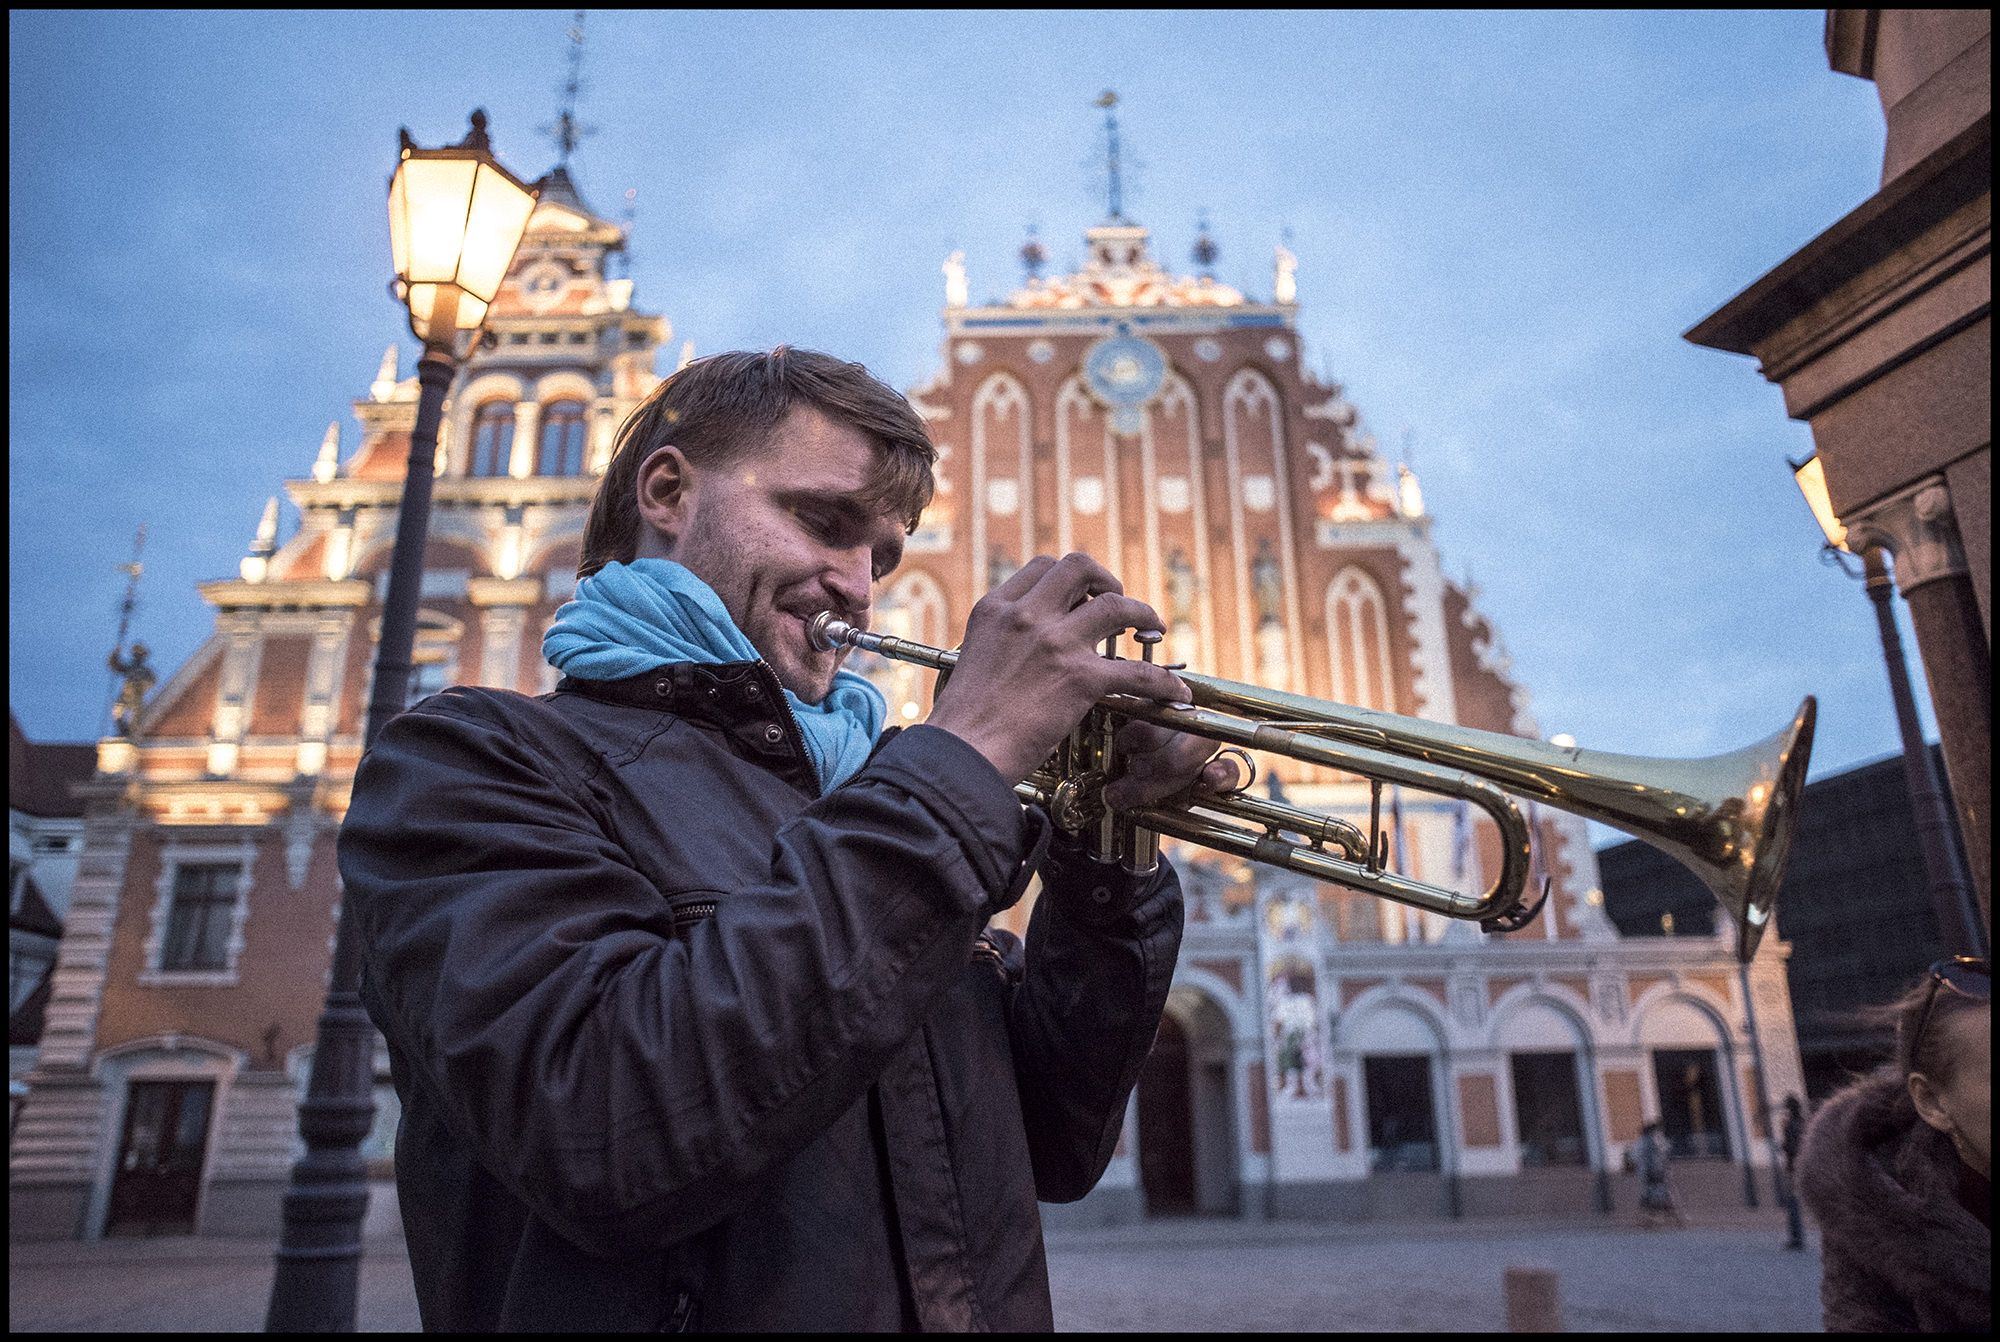 Digital Patrik Wallner Riga Blue Light Trumpet LOWQ 2000P